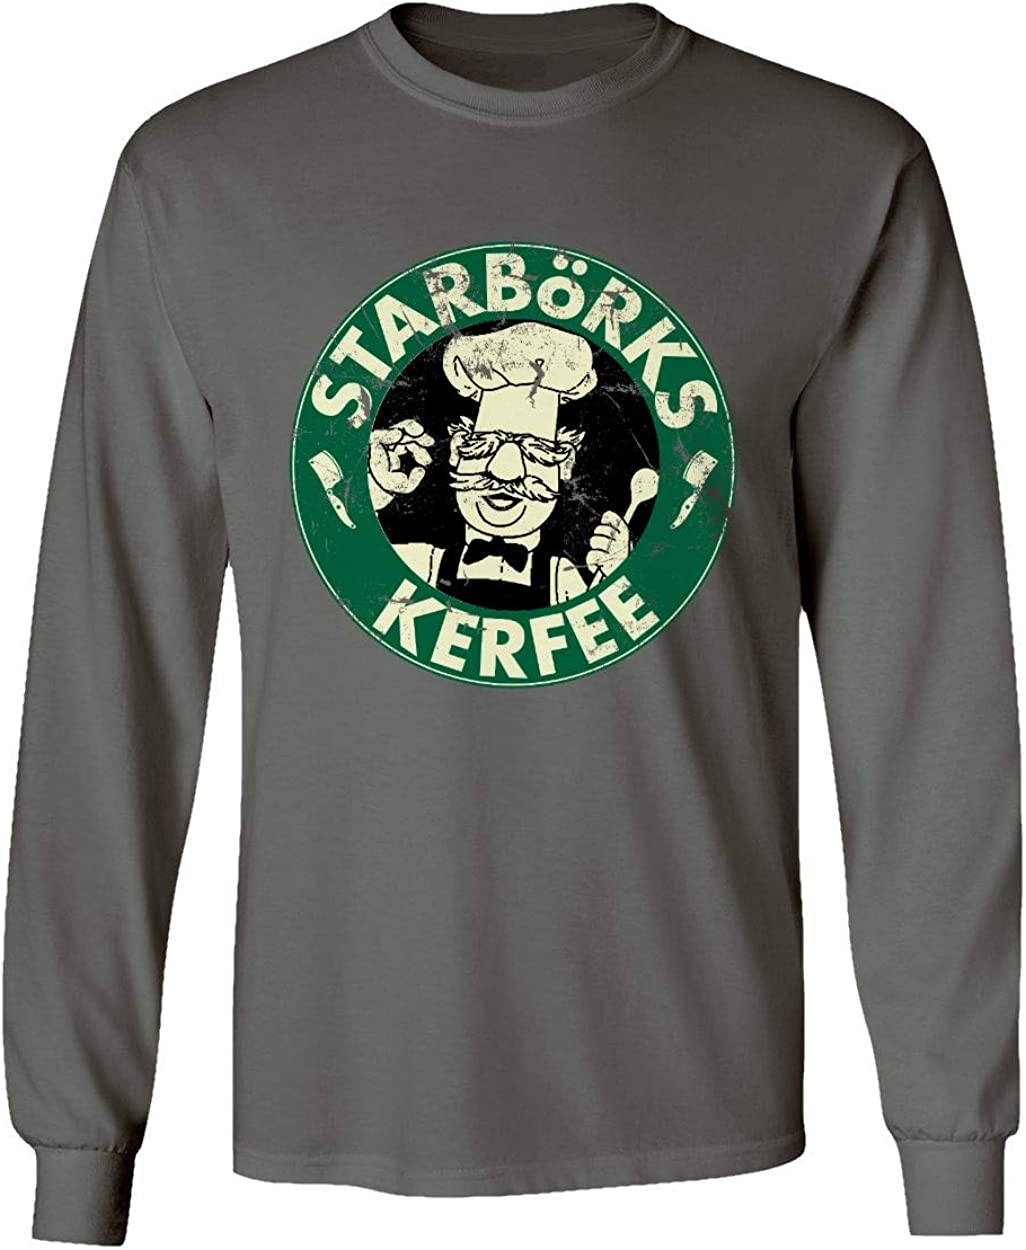 Starborks Kerfee swedish chef T Shirt Mens Tee Gift New From US